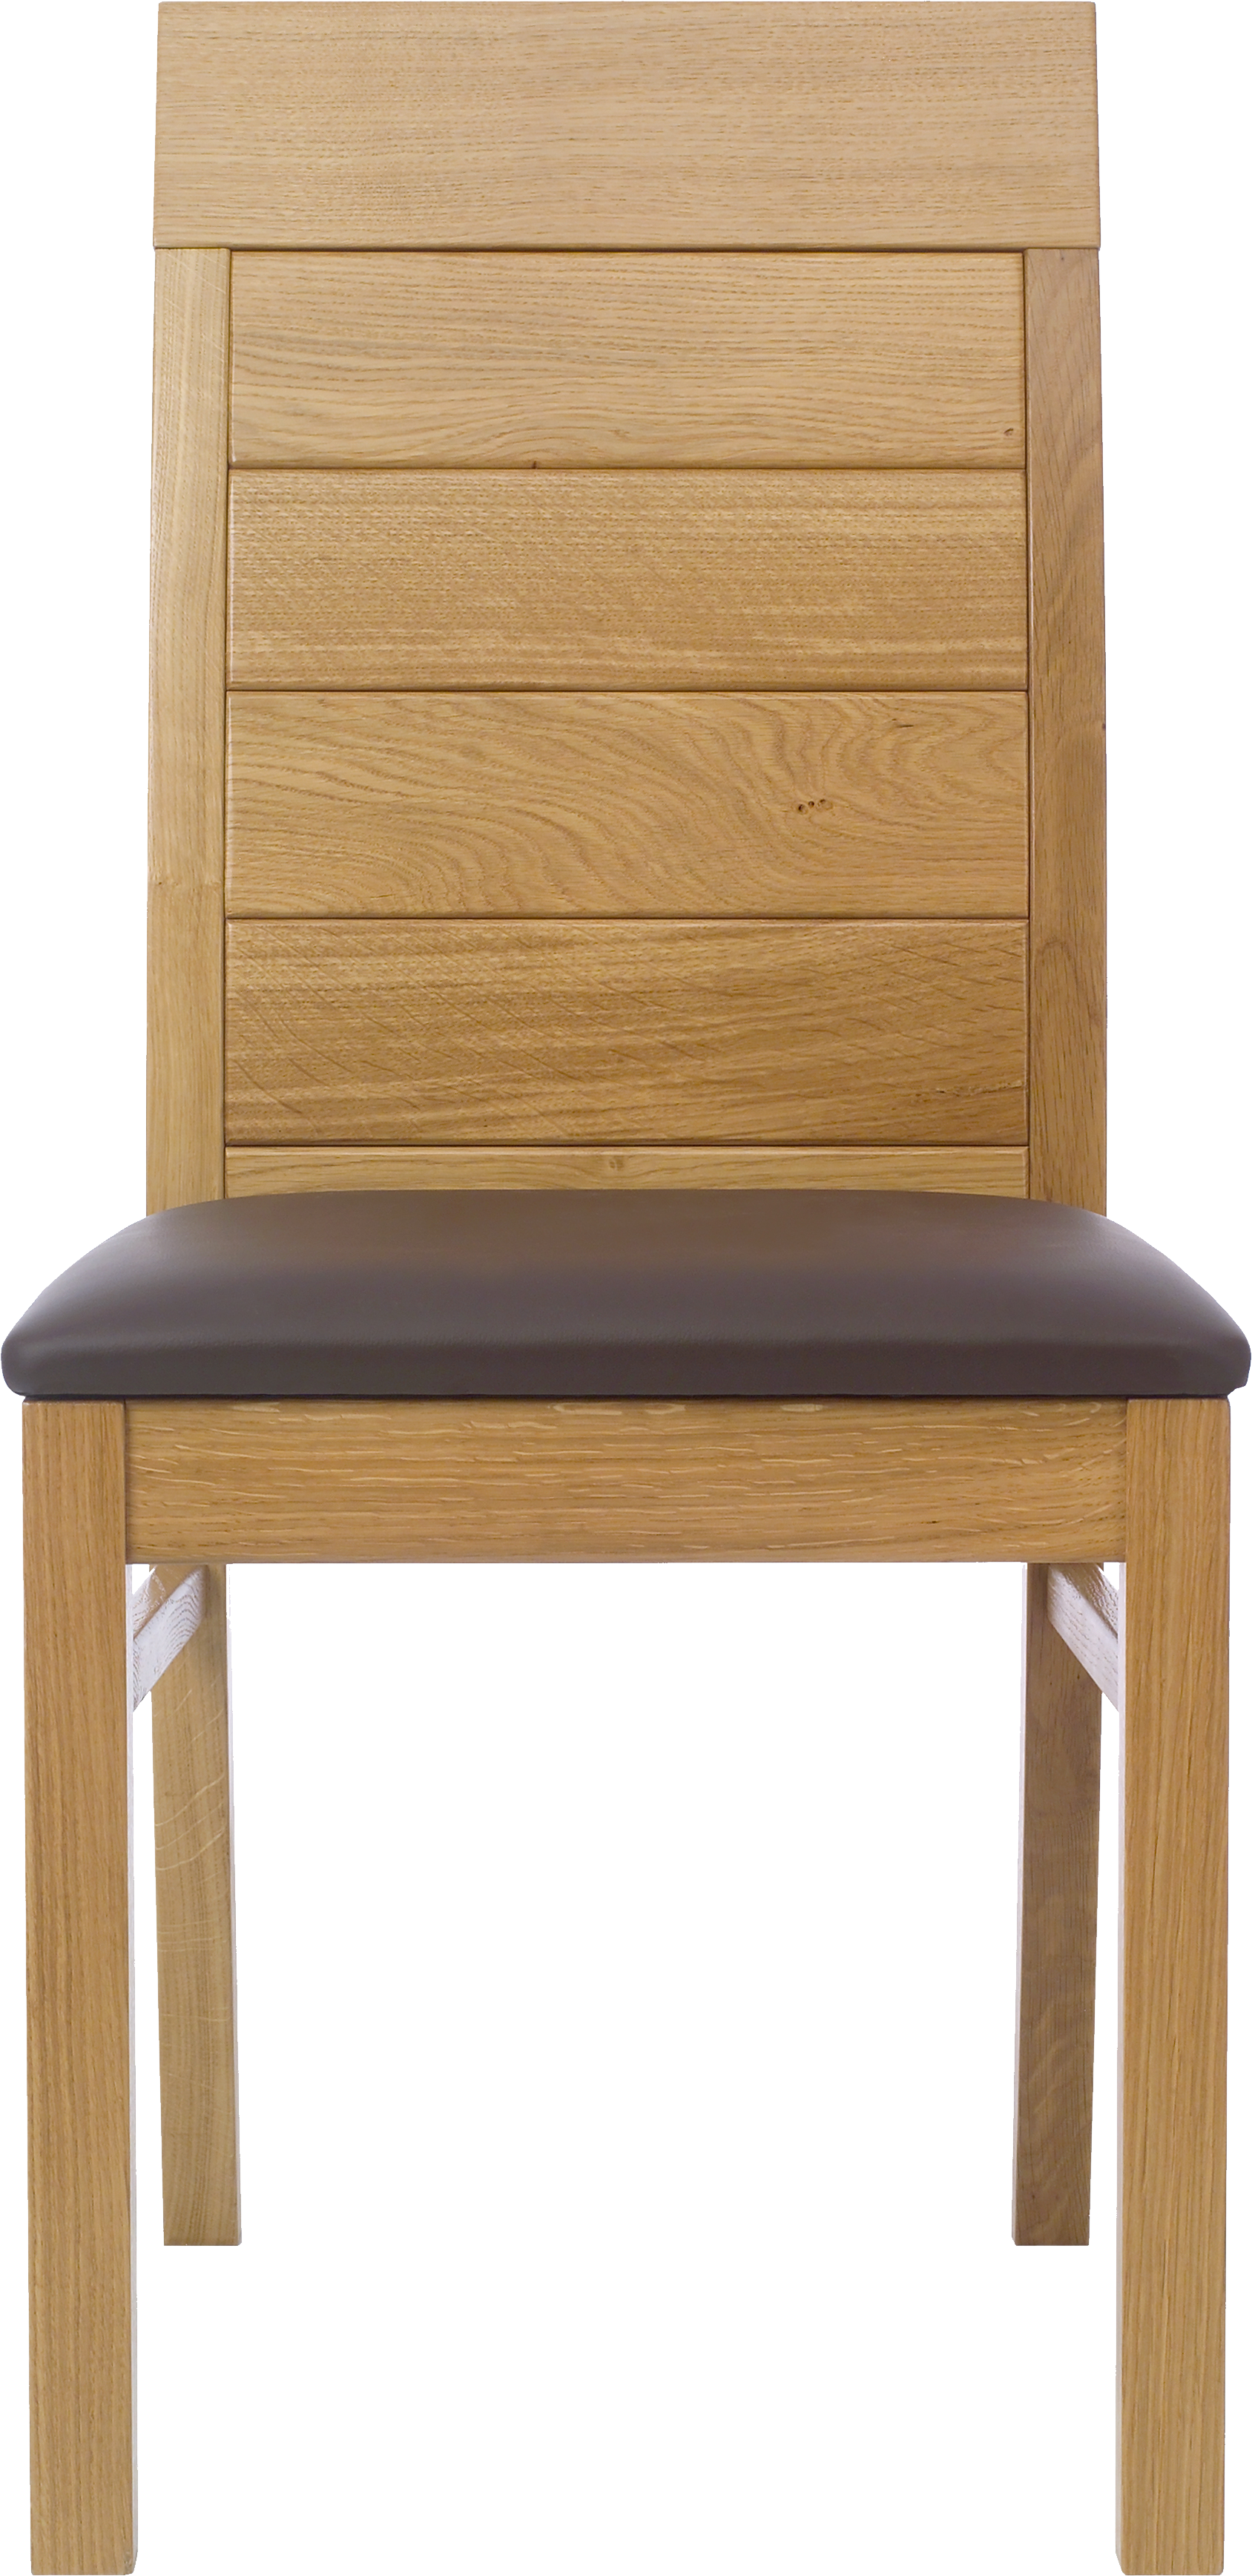 Chair Png Images Free Download 672237 Png Images Pngio Chair office, fig flat color office chair desk chair, angle, color splash, furniture png. pngio com